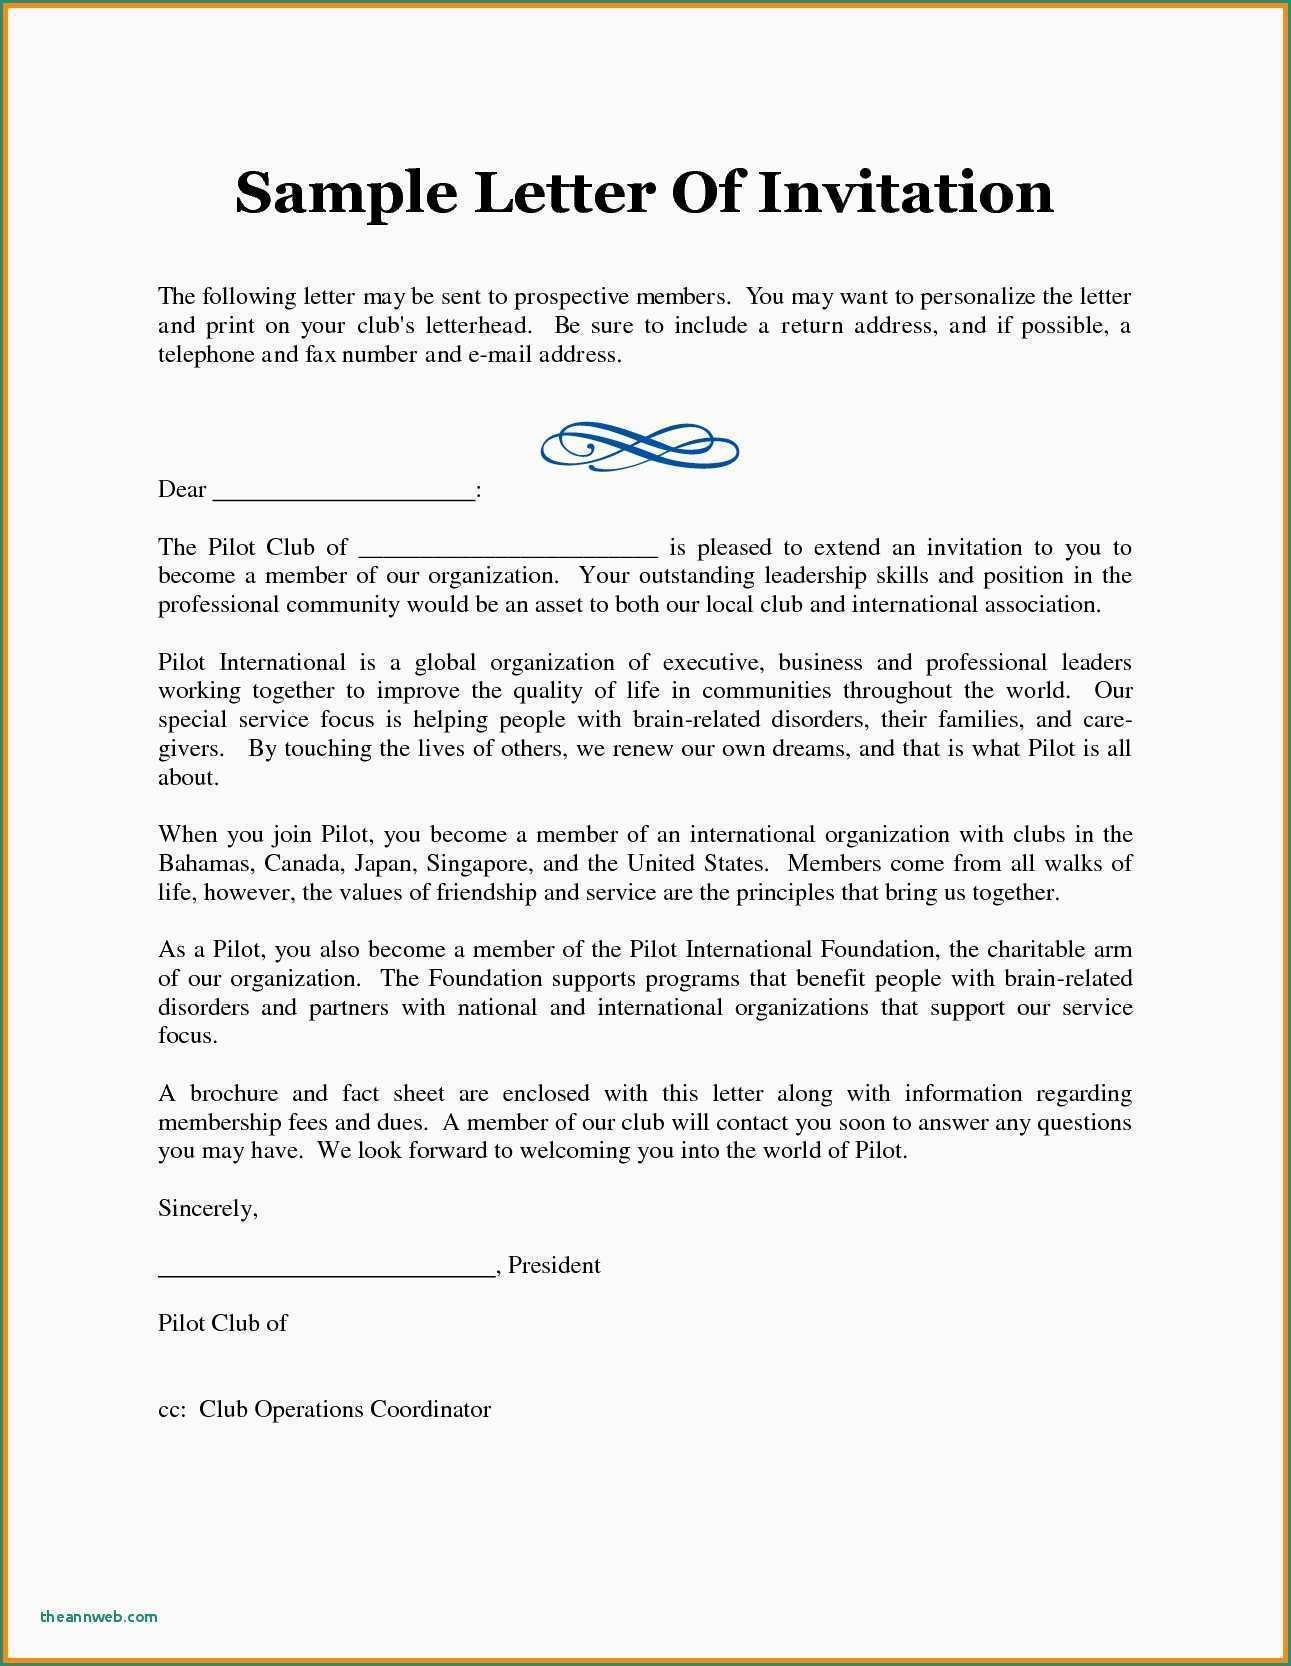 58 Create Birthday Party Invitation Letter Template Templates for Birthday Party Invitation Letter Template